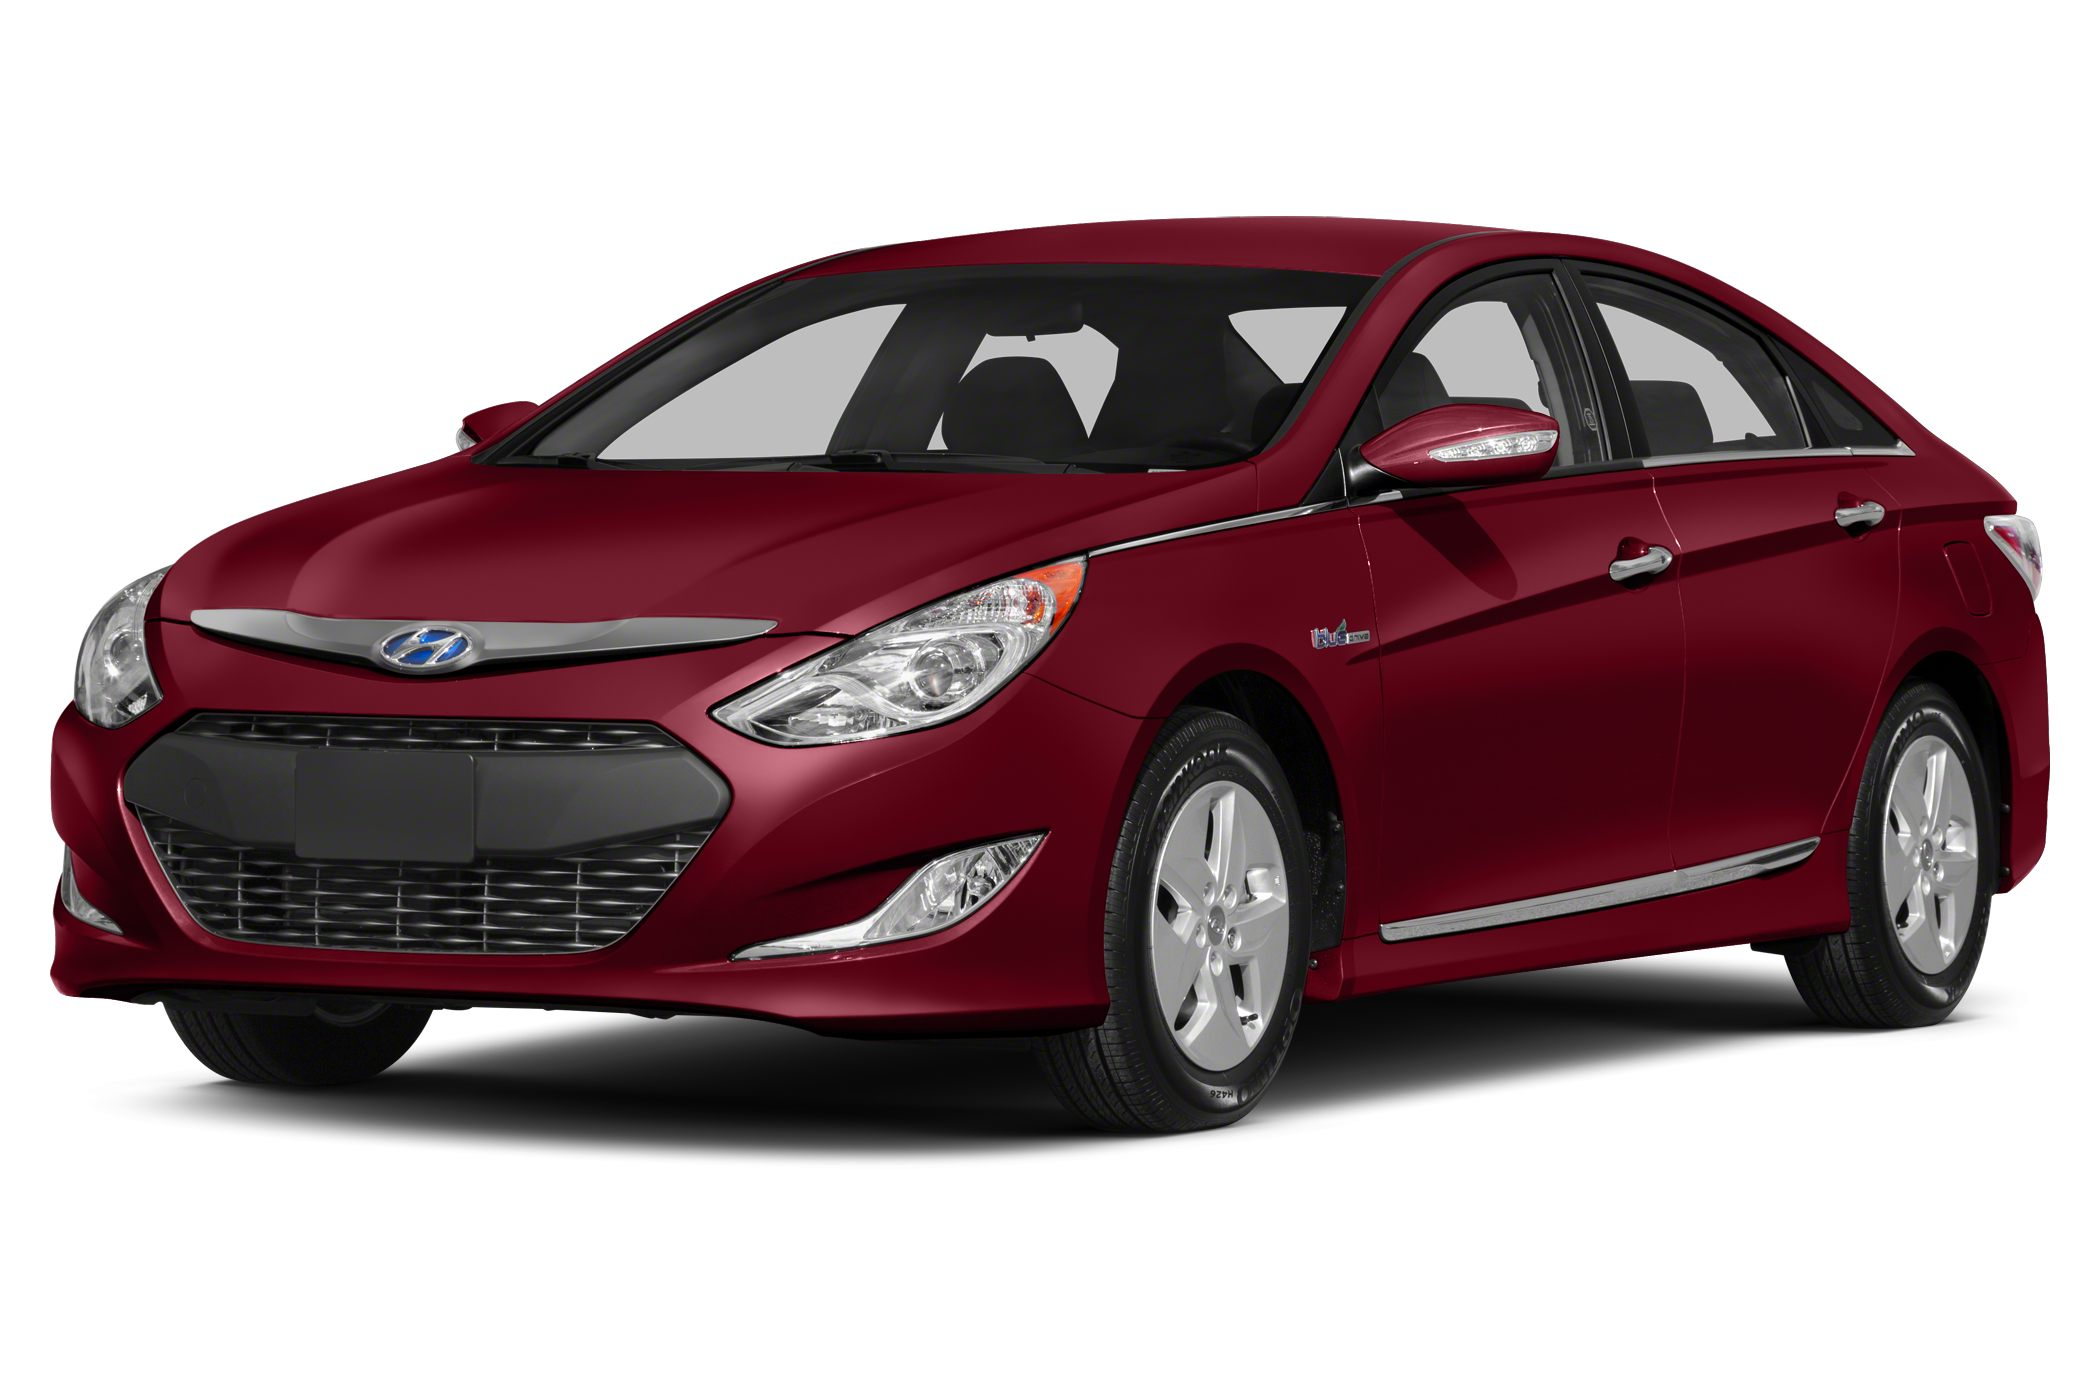 2013 Hyundai Sonata Hybrid Limited Sedan for sale in Mesa for $23,988 with 18,678 miles.